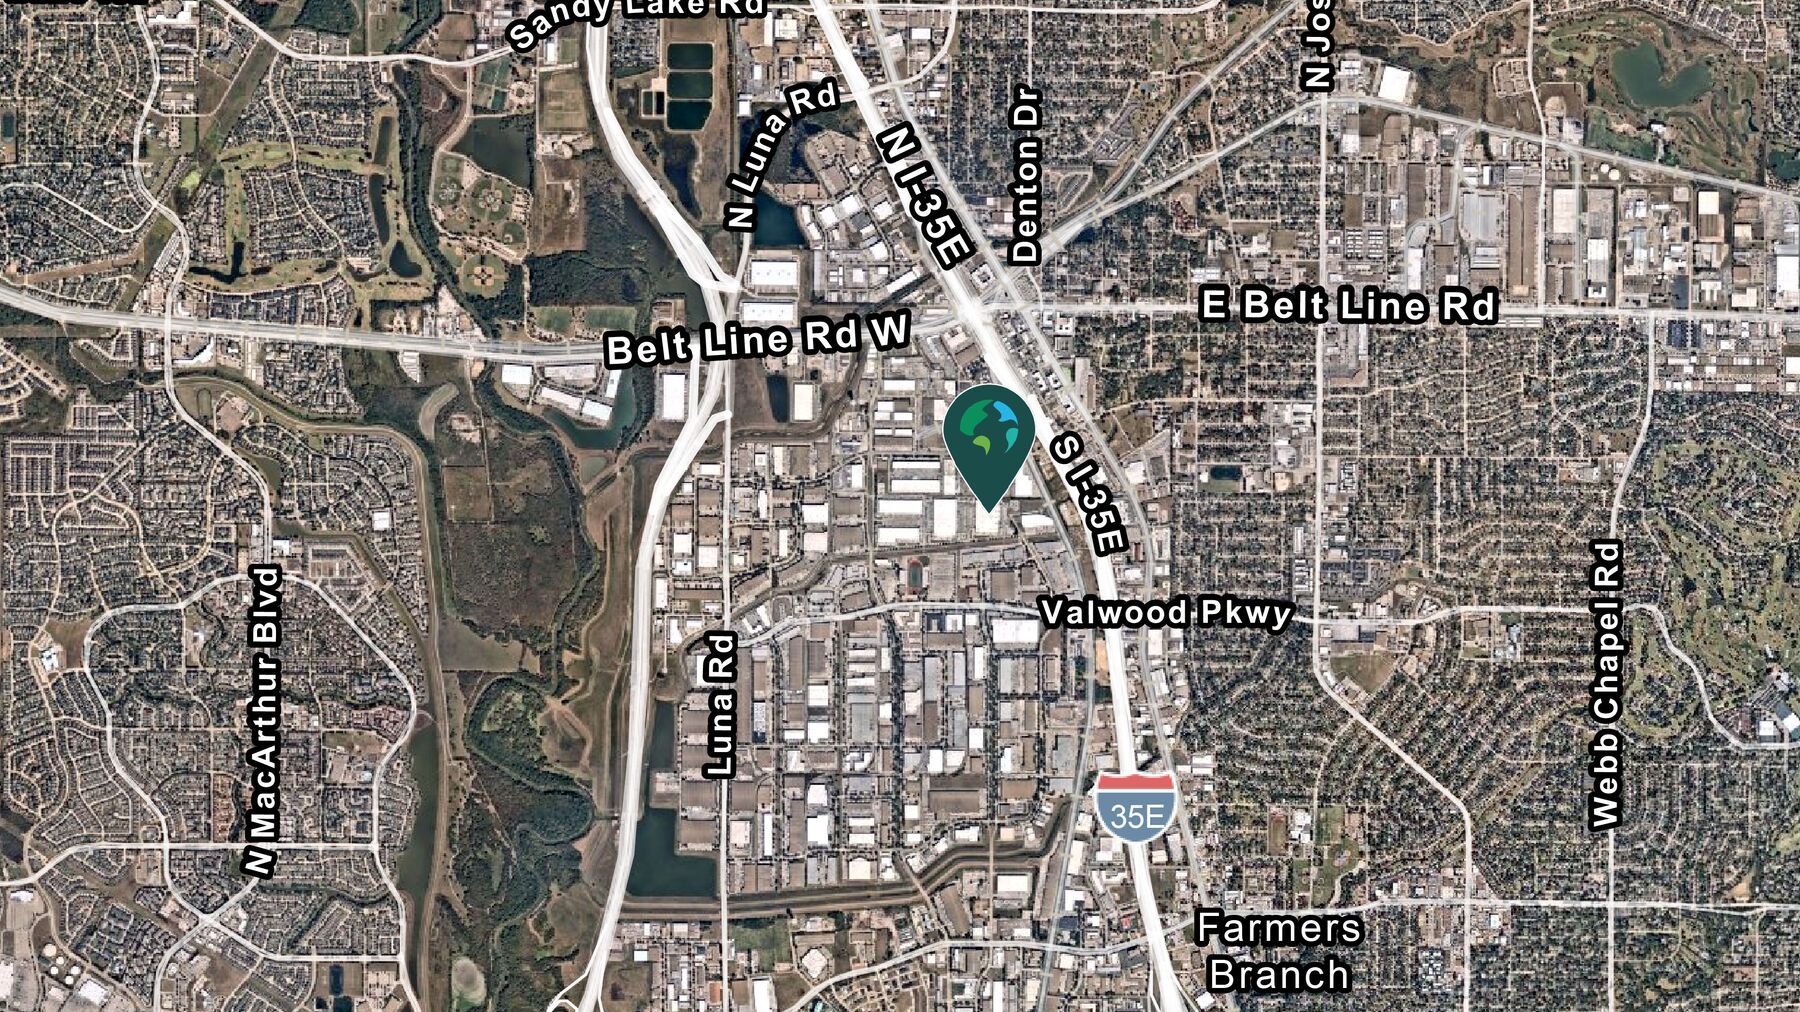 DPM-Prologis-Valwood-Corporate-Center-4-DAL03904-1625-Hutton-Drive_AerialMap.jpg